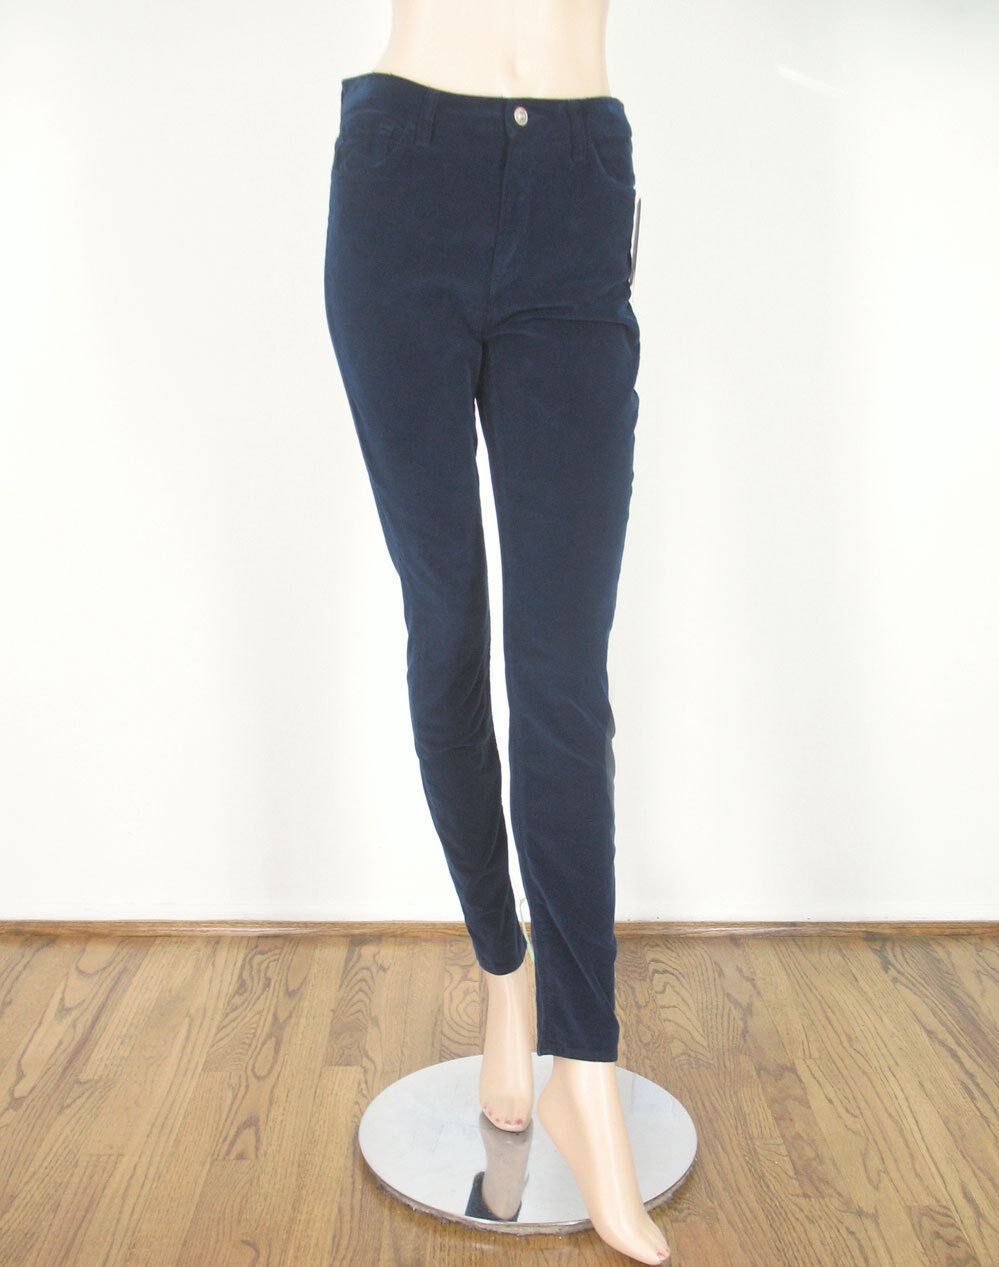 7 For All Mankind Skinny Corduroy Pants Navy bluee Stretch 29 9273 -FLAW